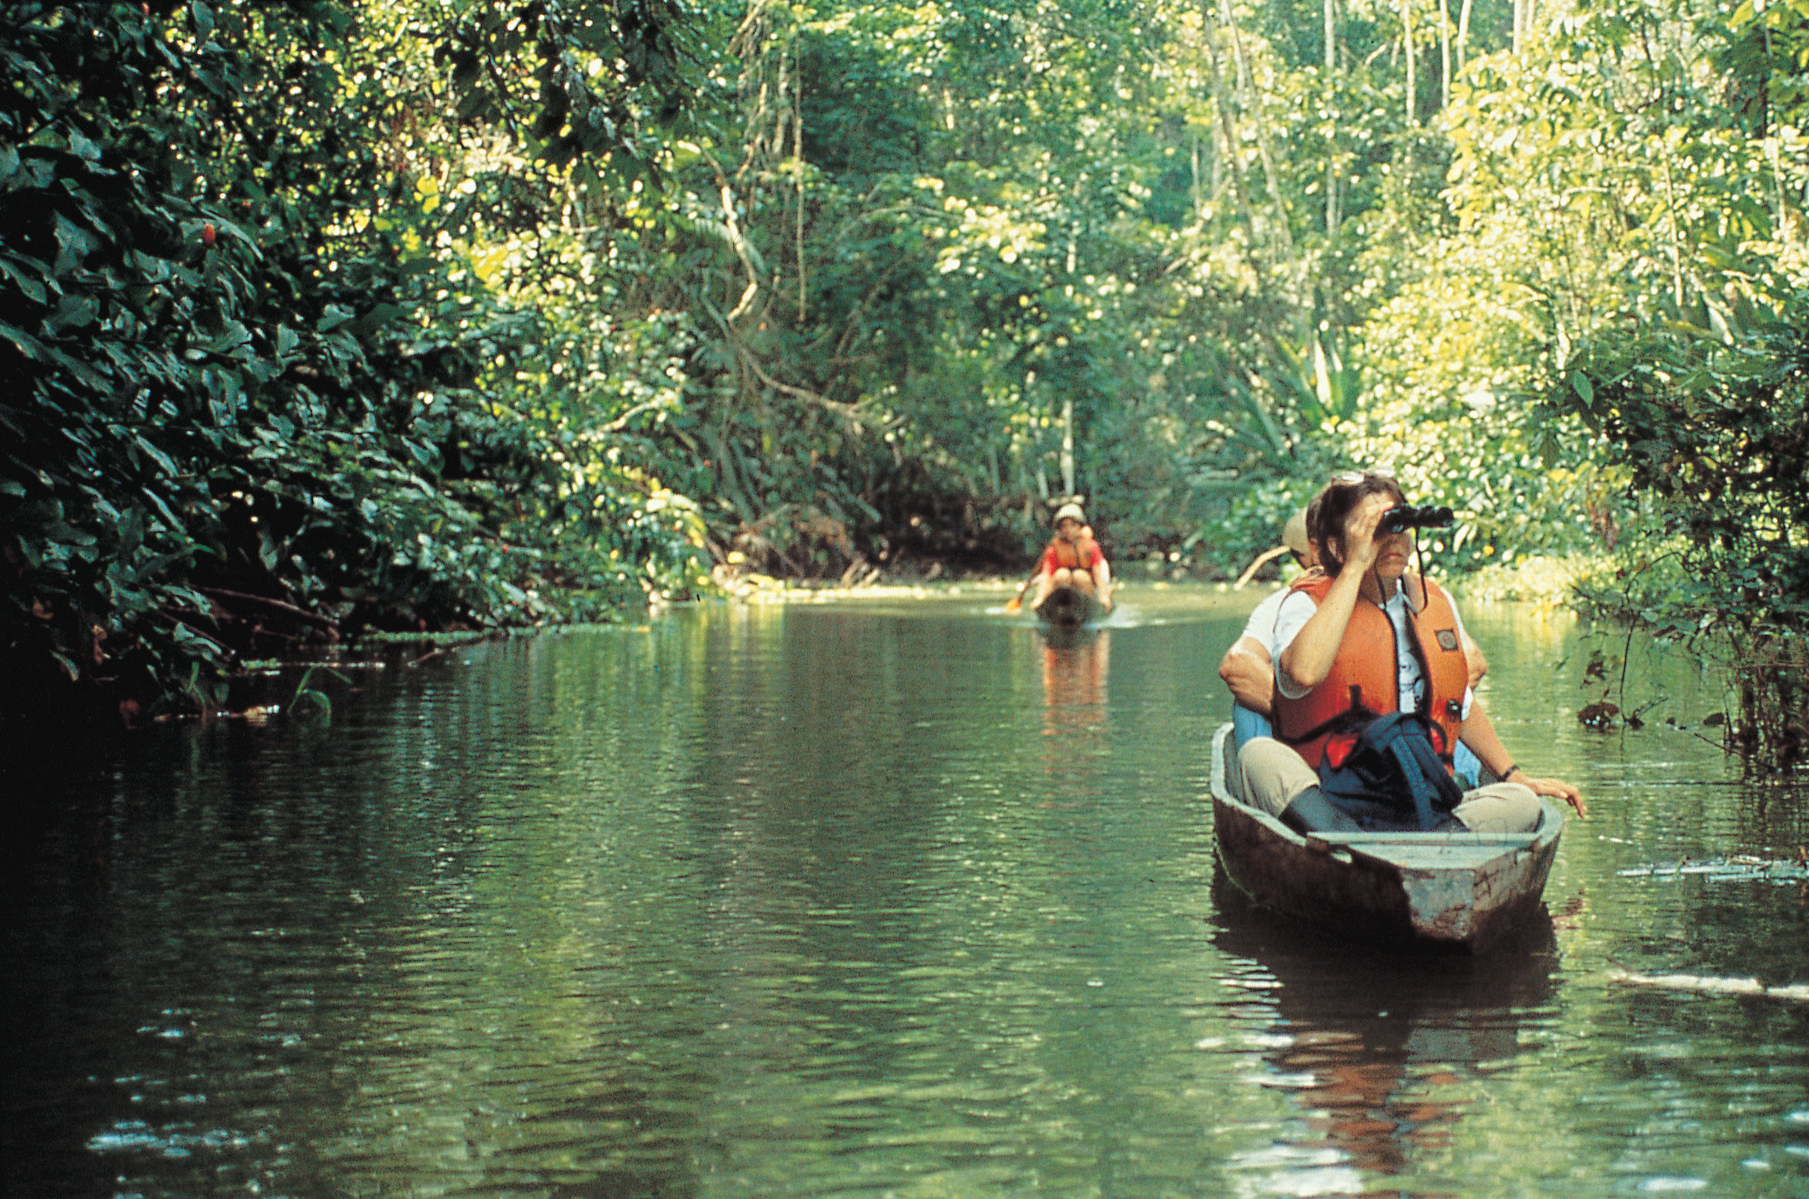 Nature tour in Ecuador's Amazon Basin